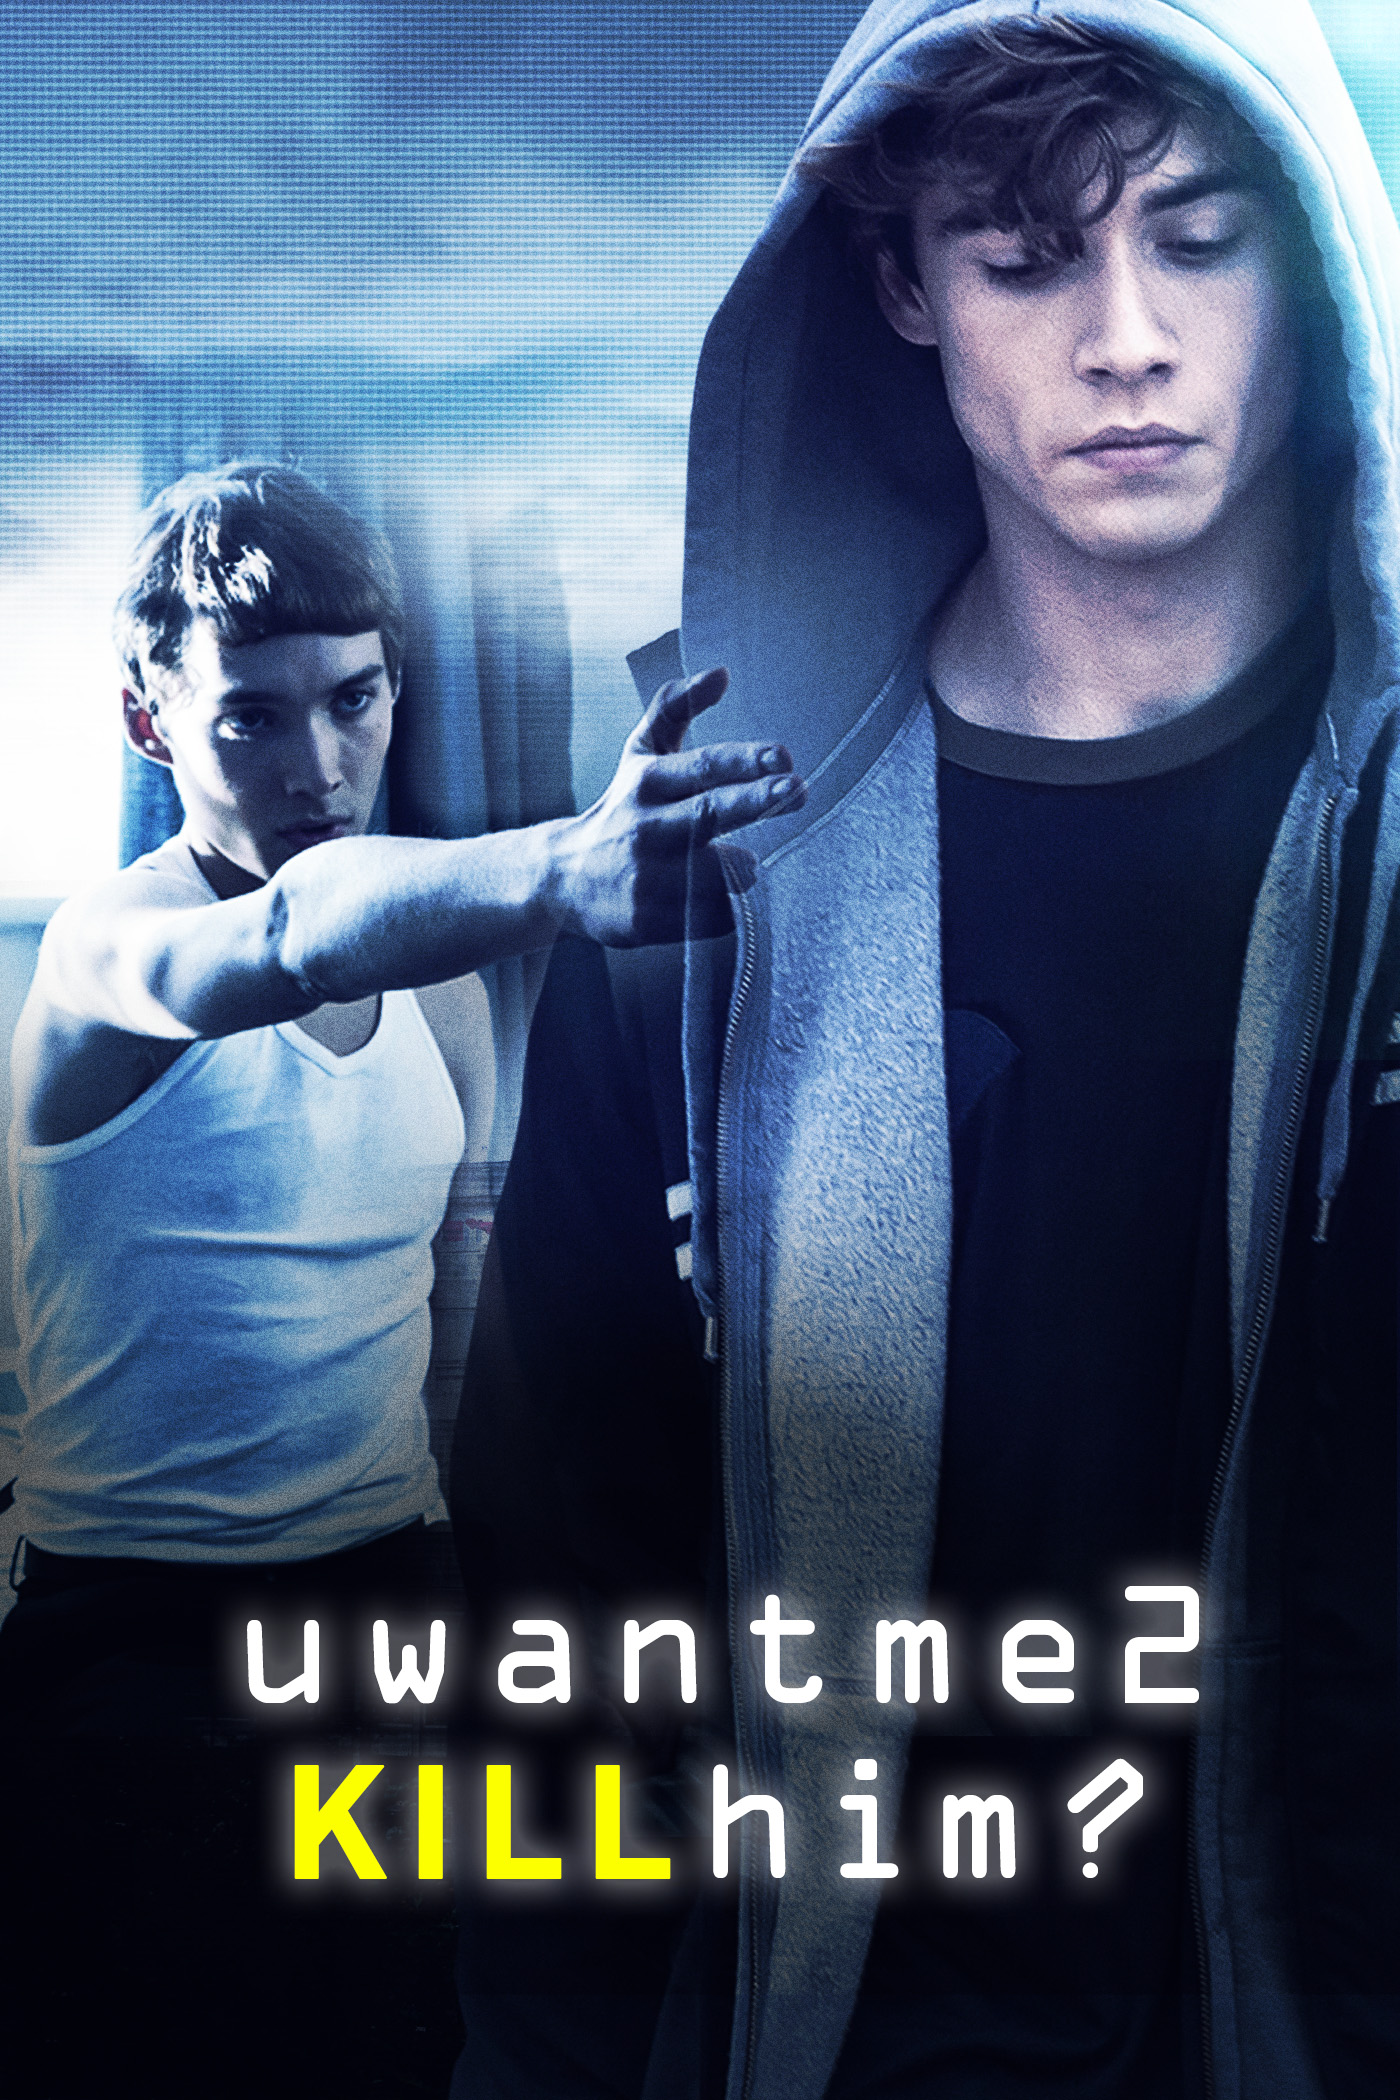 UWANTME2KILLHIM? movie poster